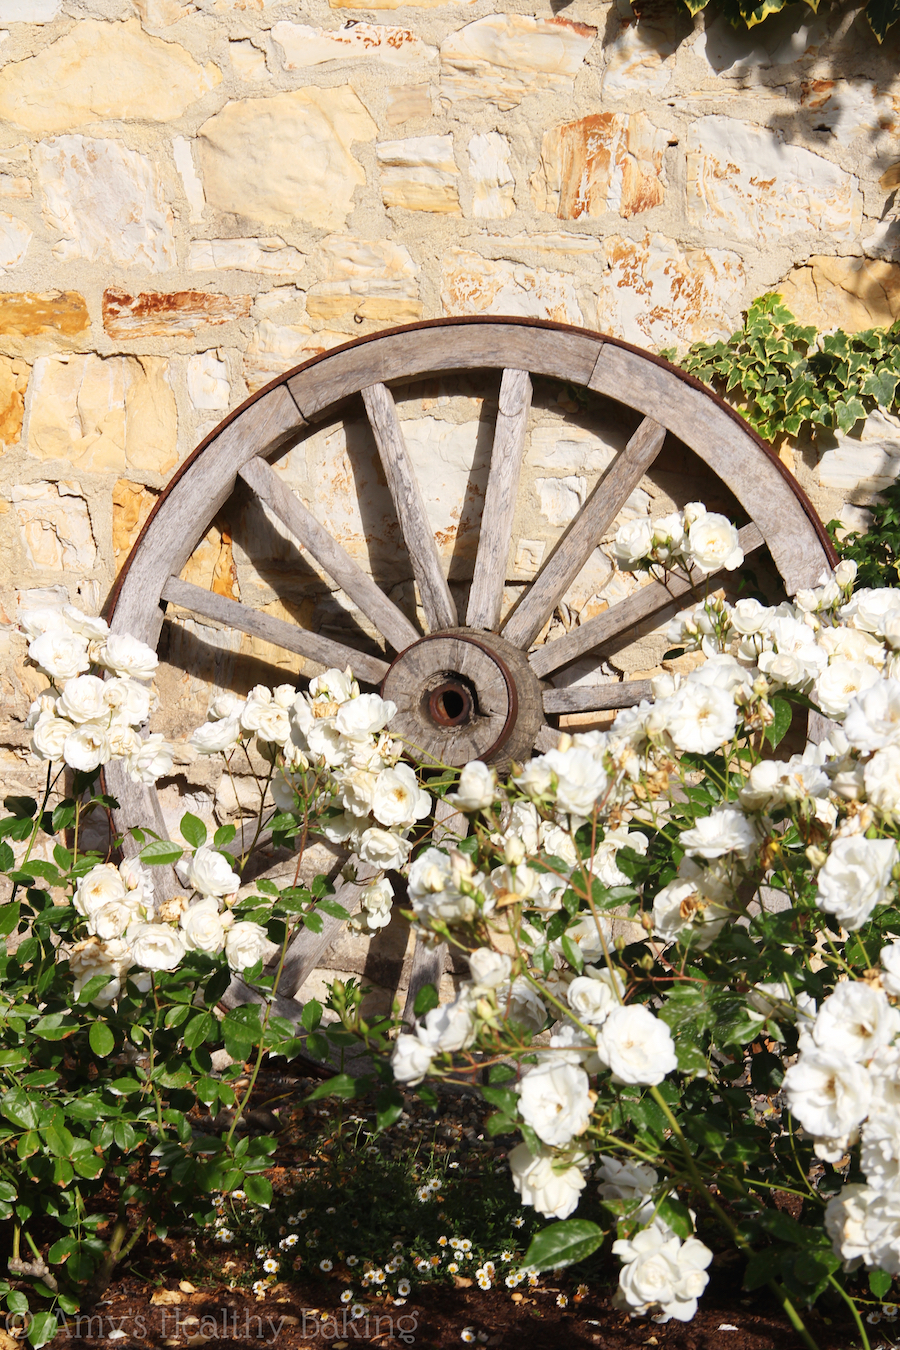 white flowers in front of a wooden wagon wheel and brick wall